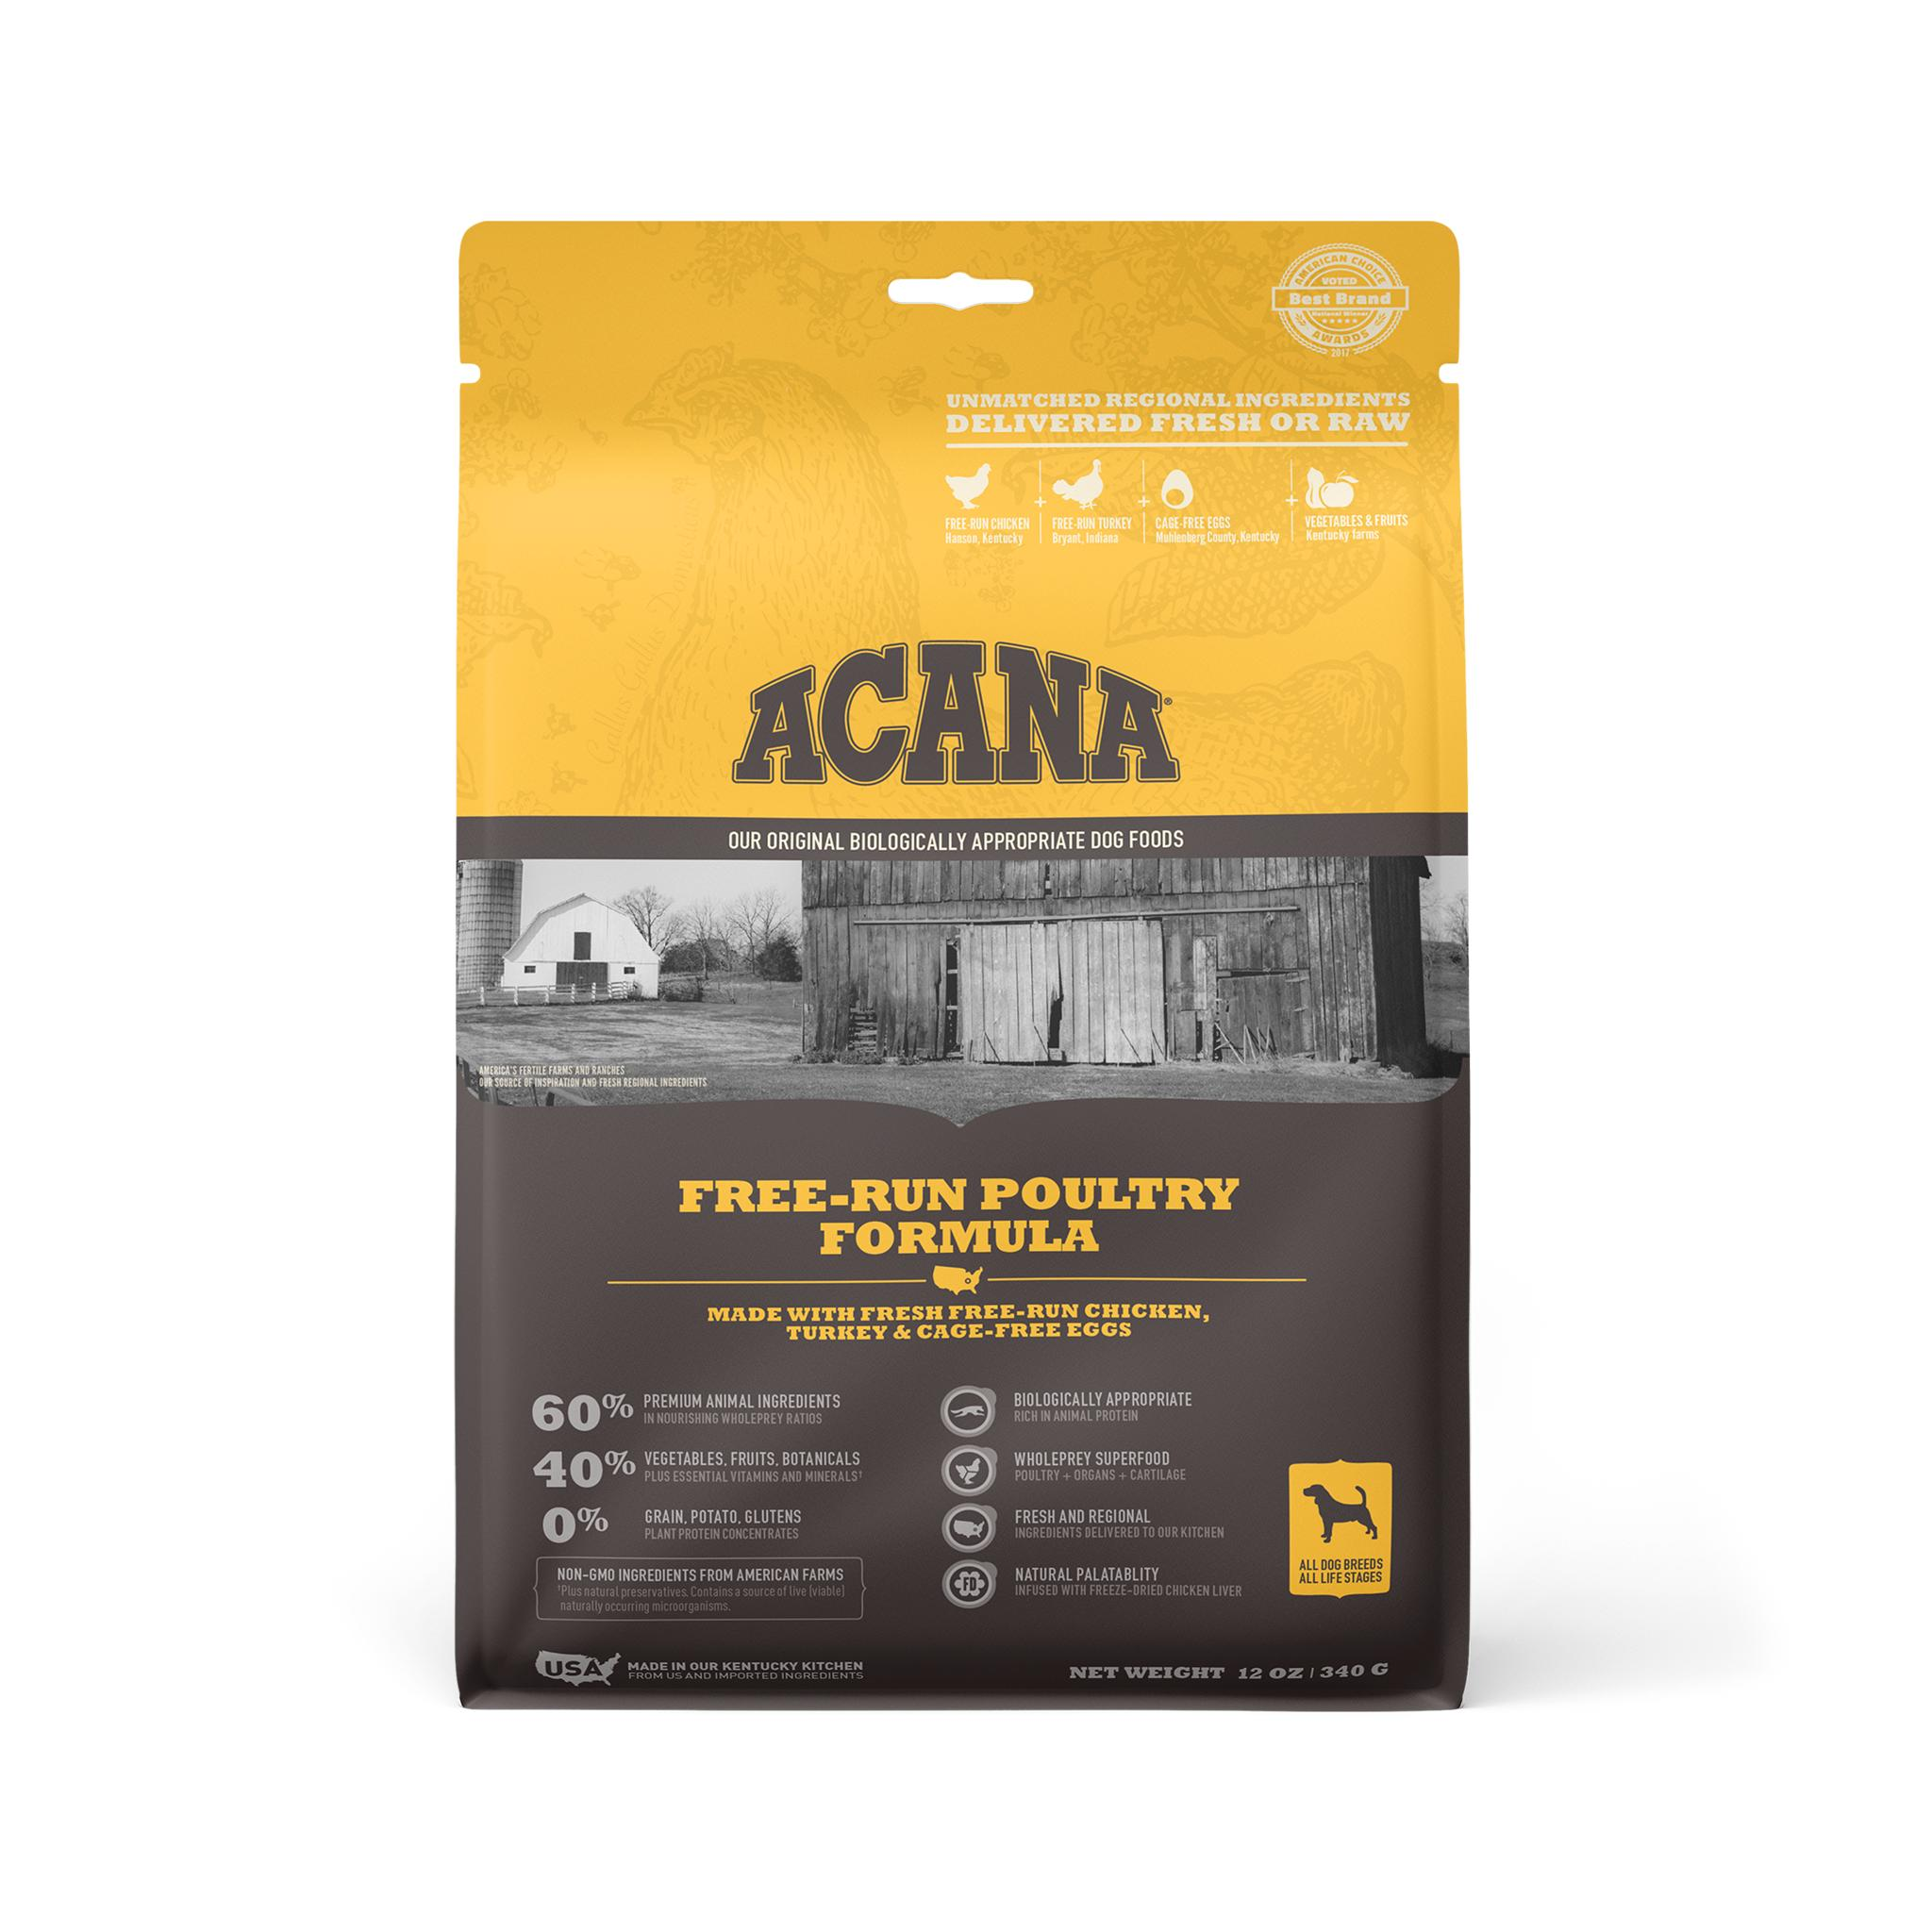 ACANA Free-Run Poultry Grain-Free Dry Dog Food Image